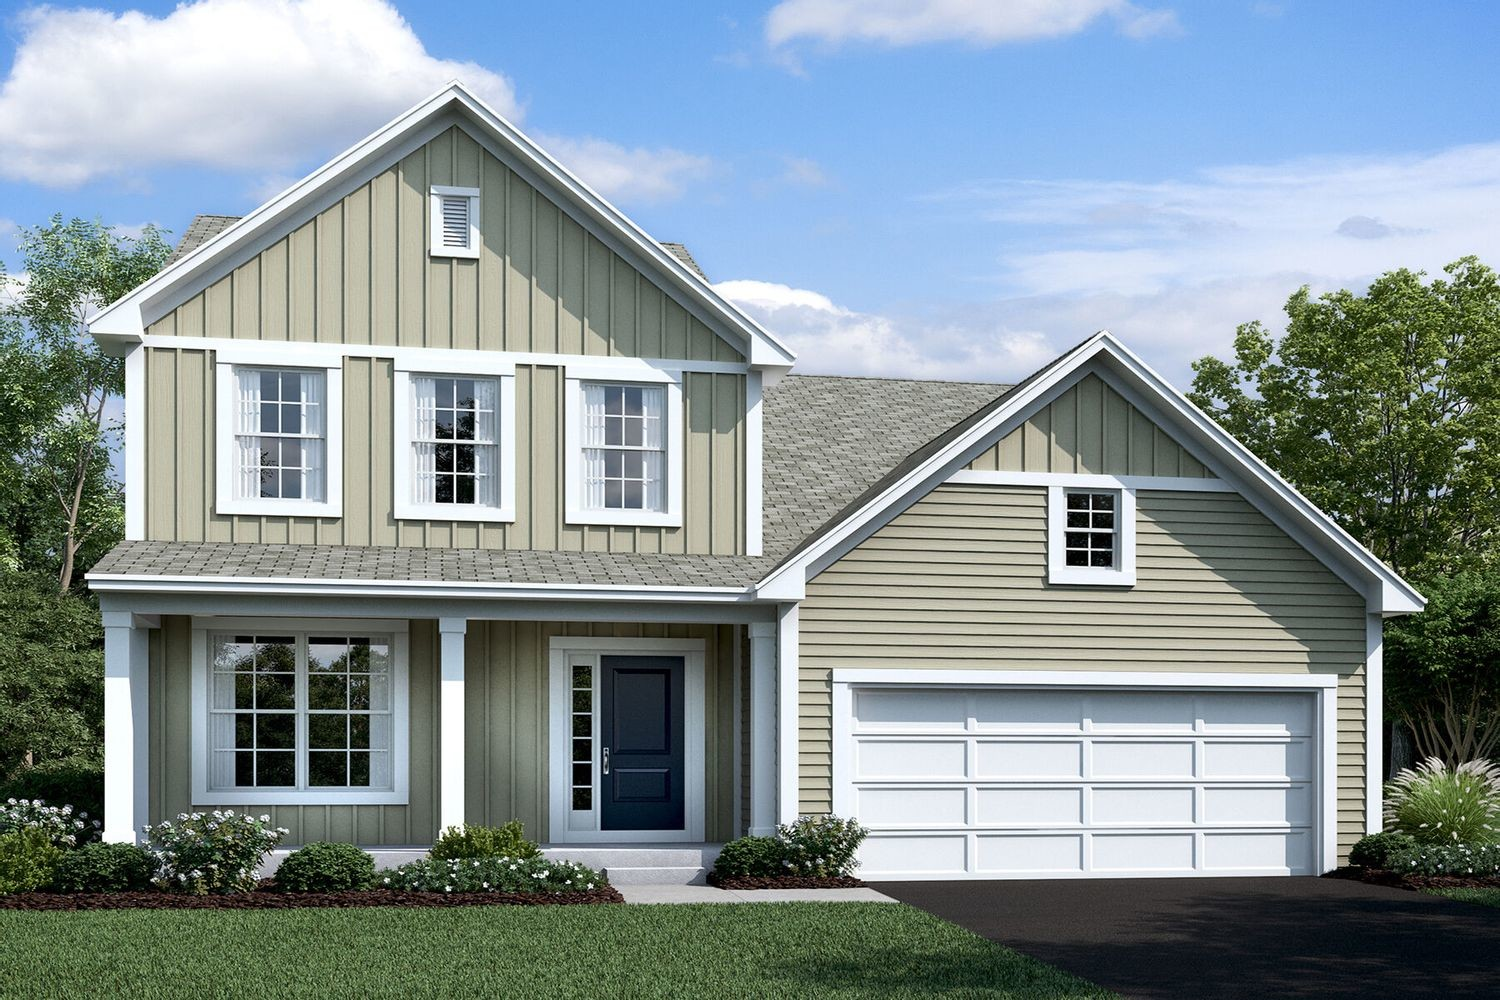 Move In Ready New Home In Retreat at Woodcrest Crossing Community